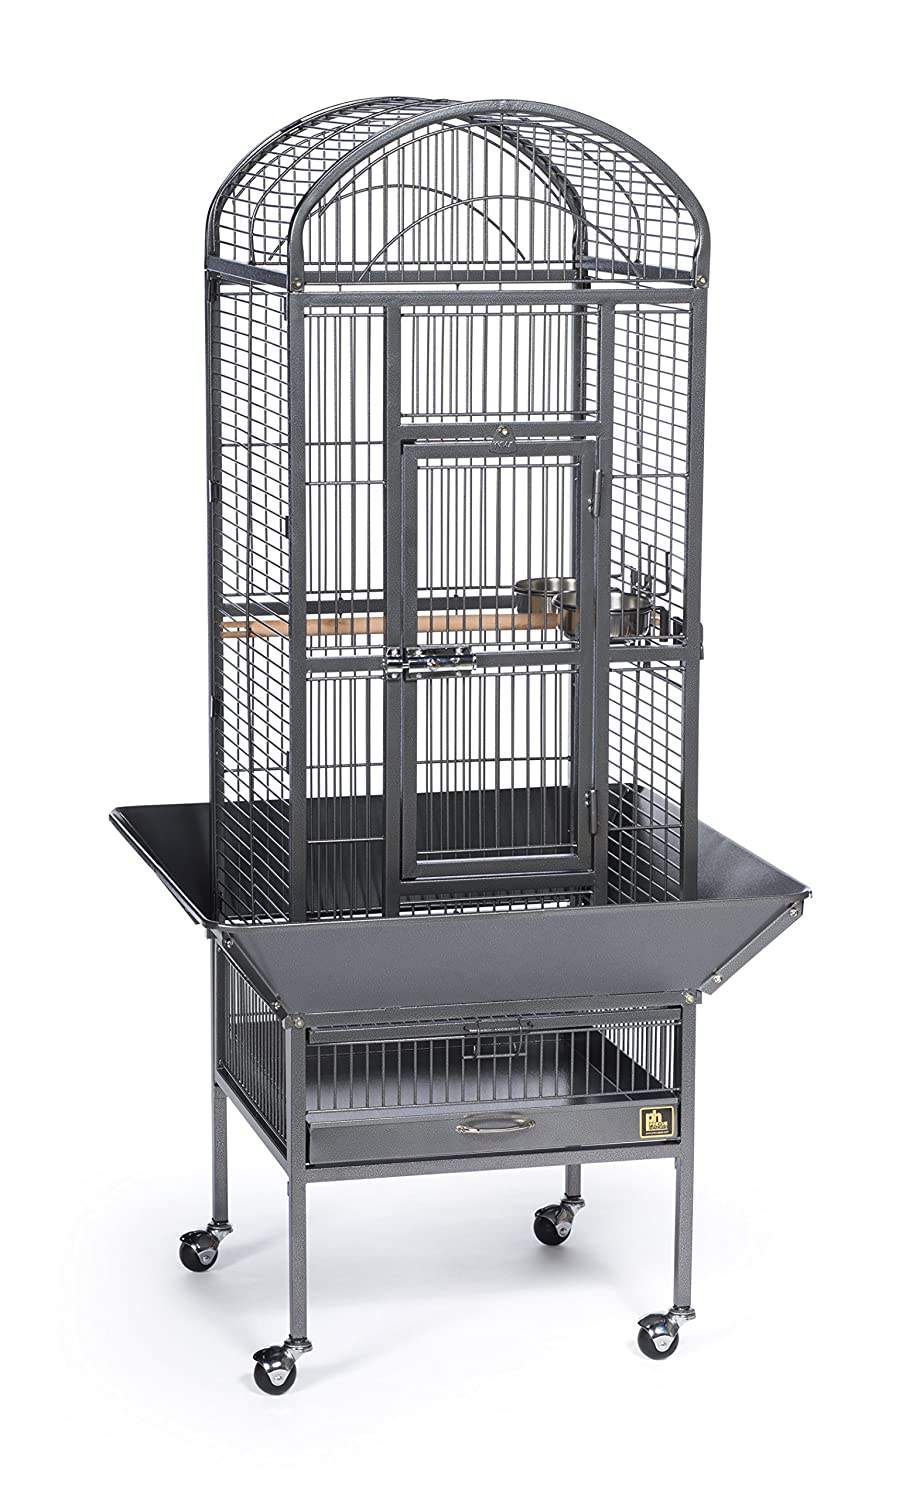 Prevue Pet Products Dometop Bird Cage, Small Chalk White Inc. 34512